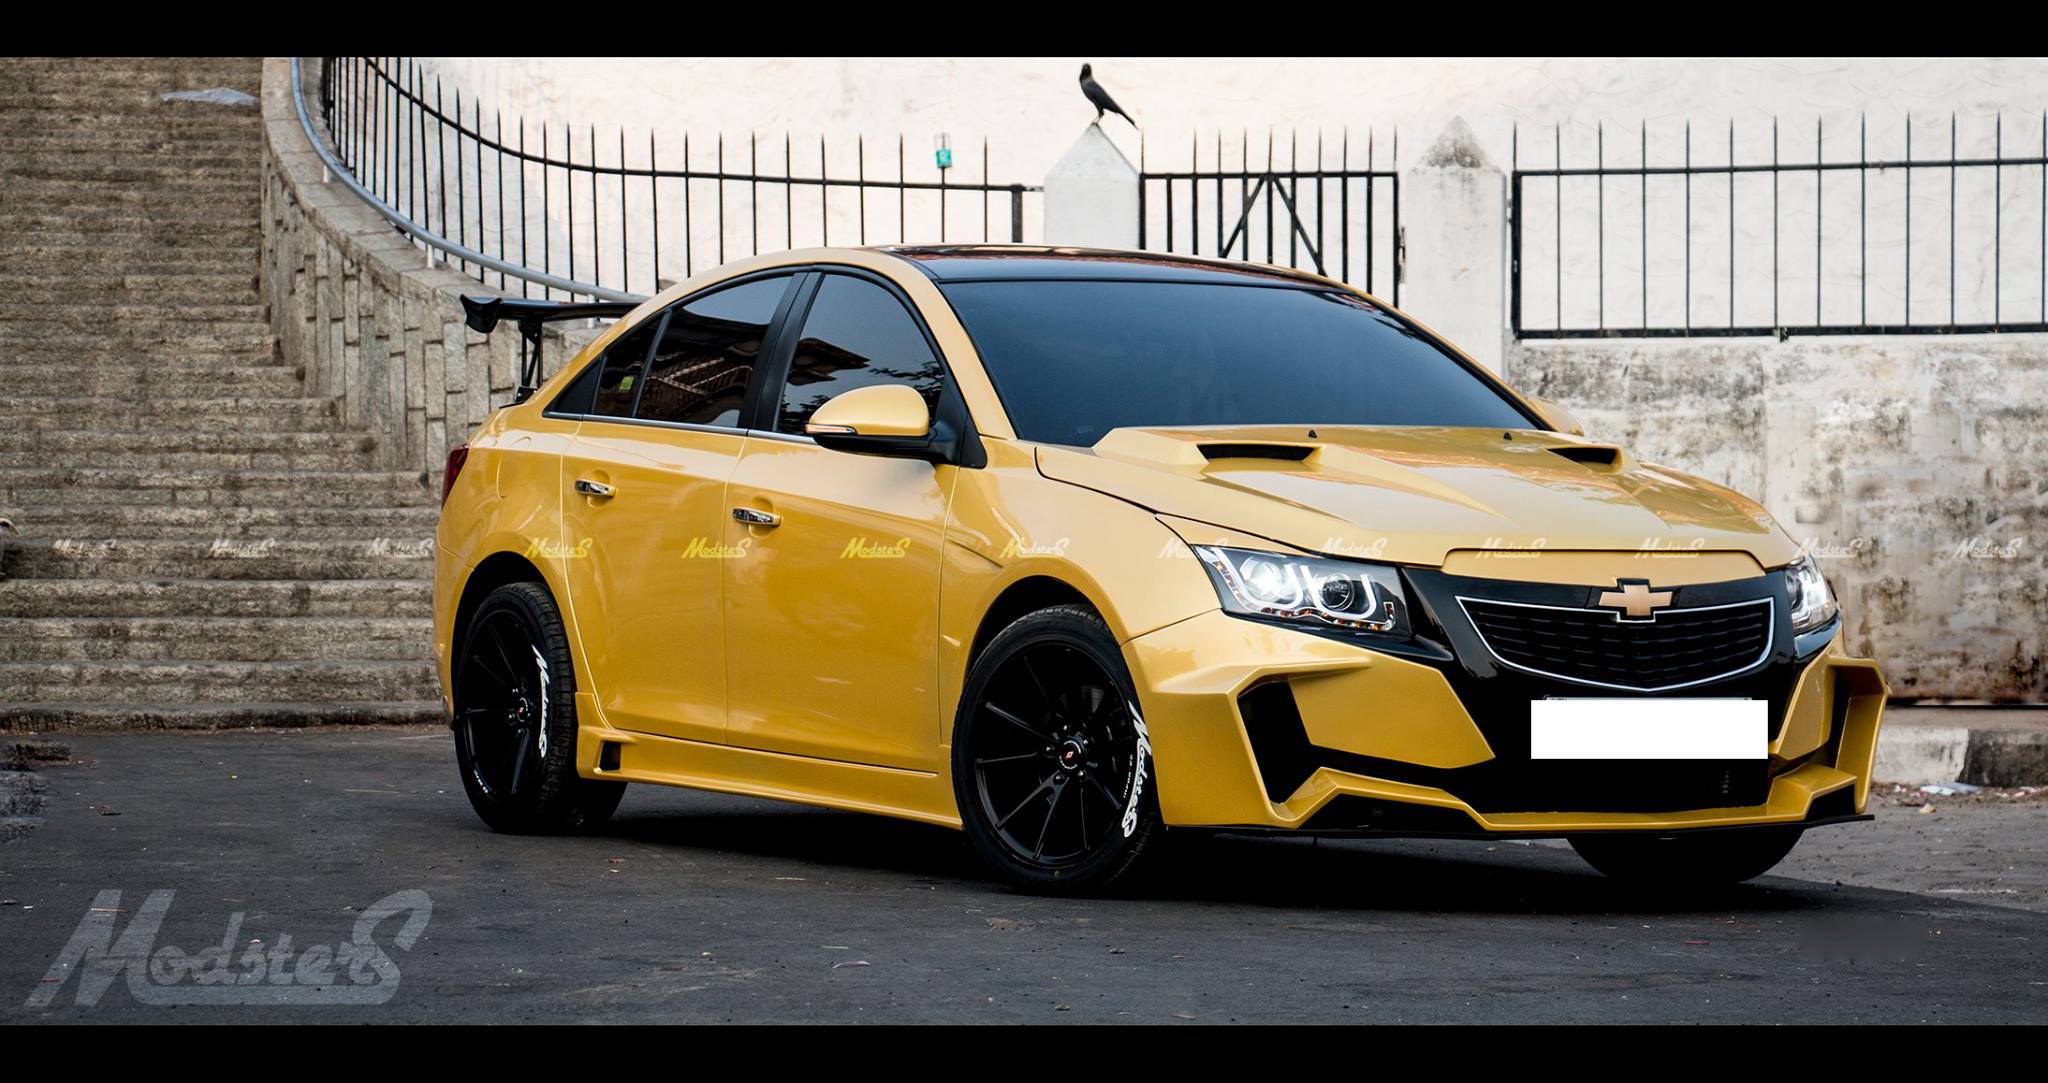 Chevrolet Cruze Project Yellow Transformer In Images